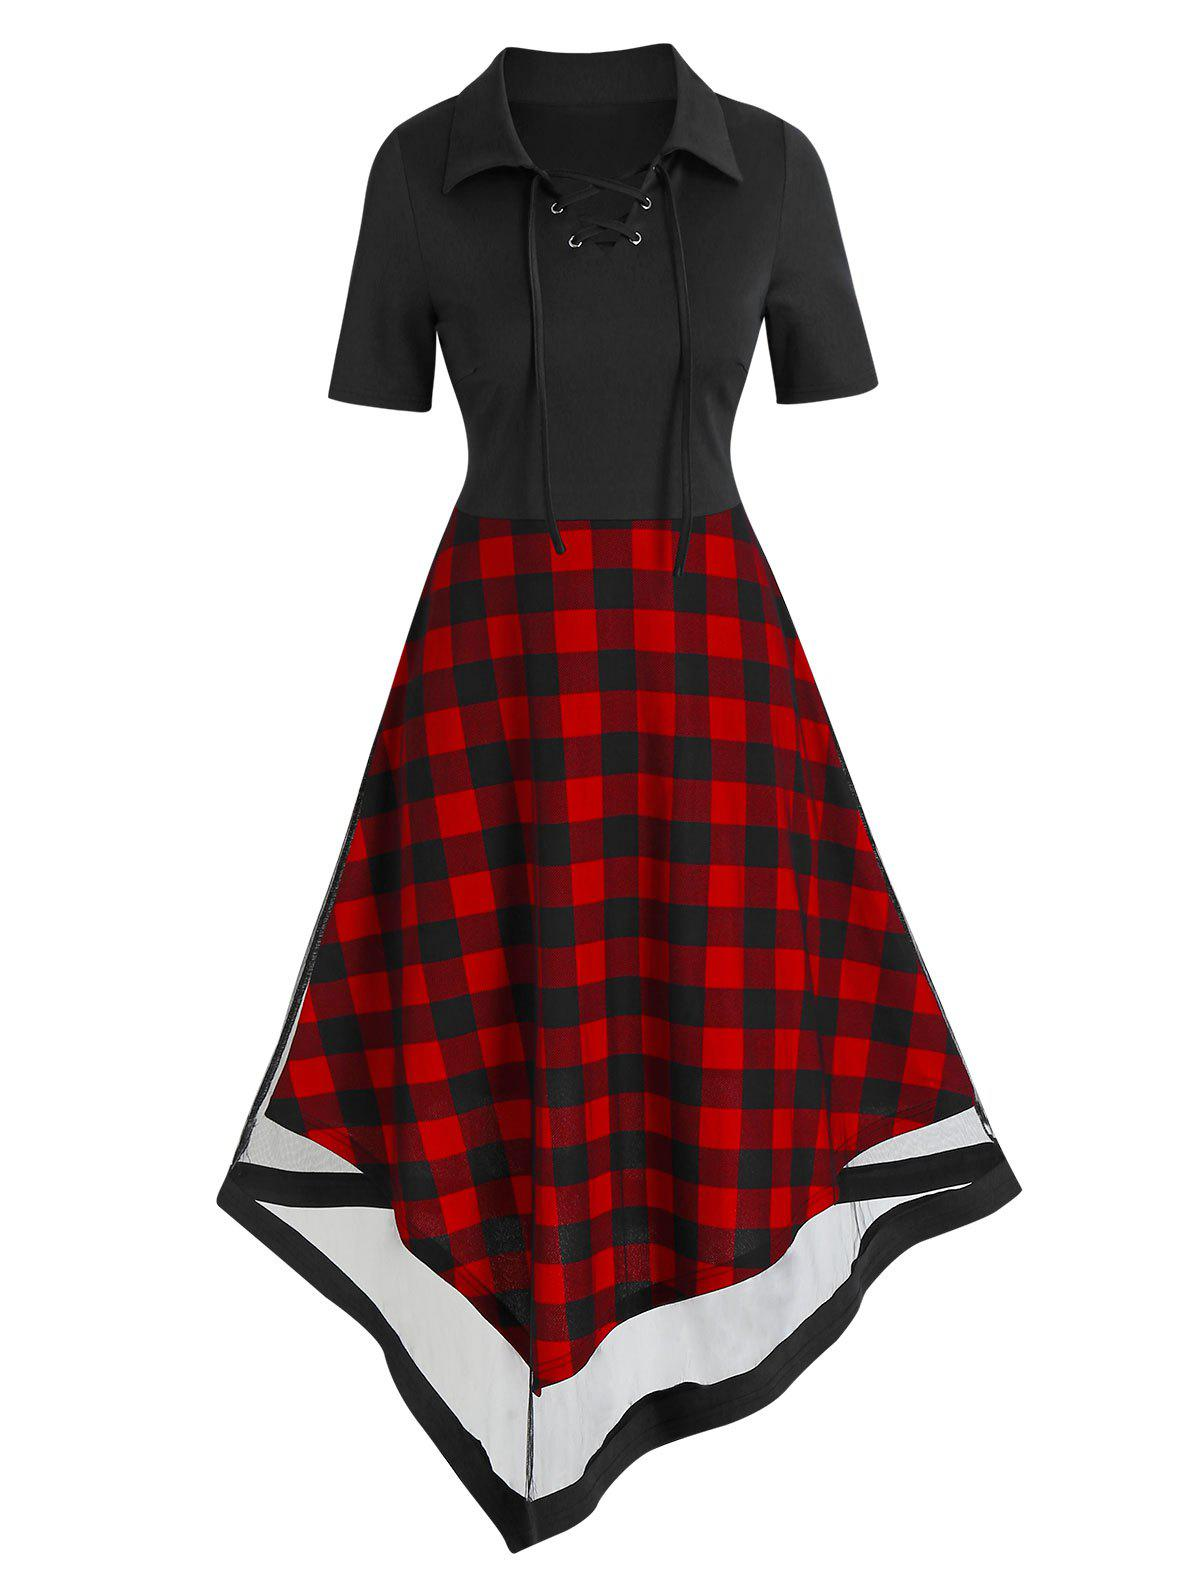 Tartan Print Lace Up High Waist Asymmetric Dress - BLACK M